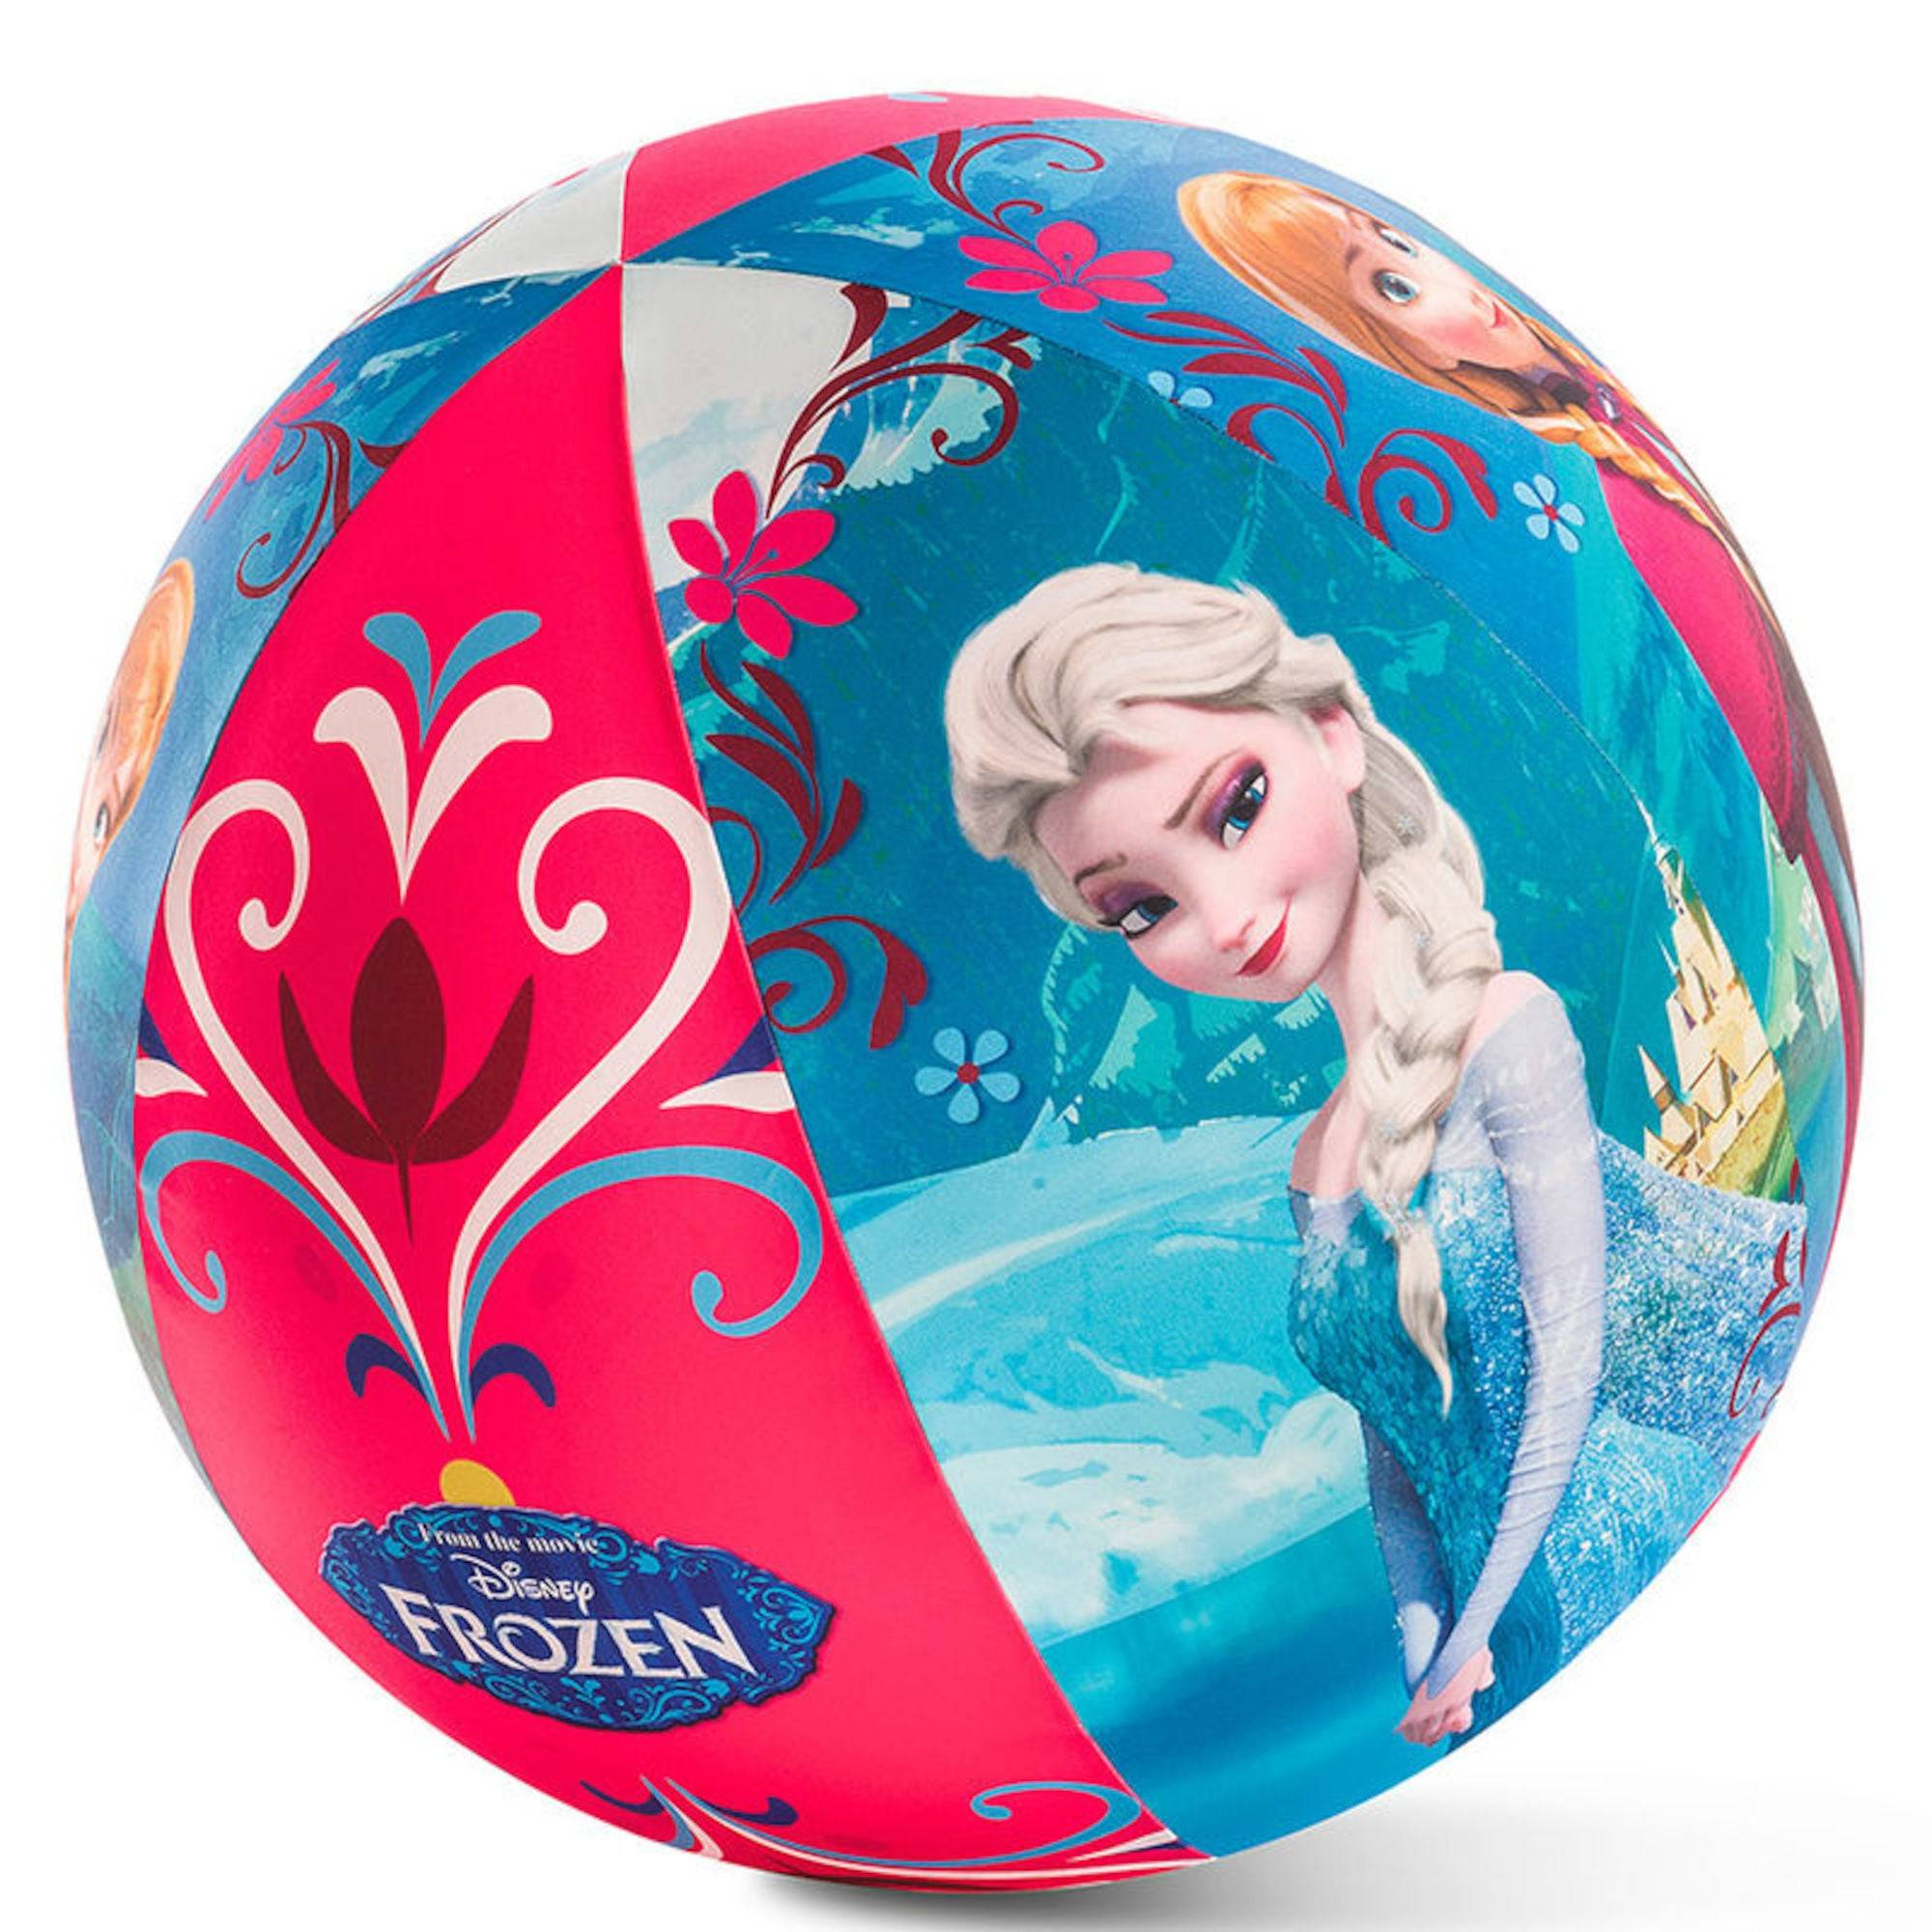 Disney Frozen Badeball